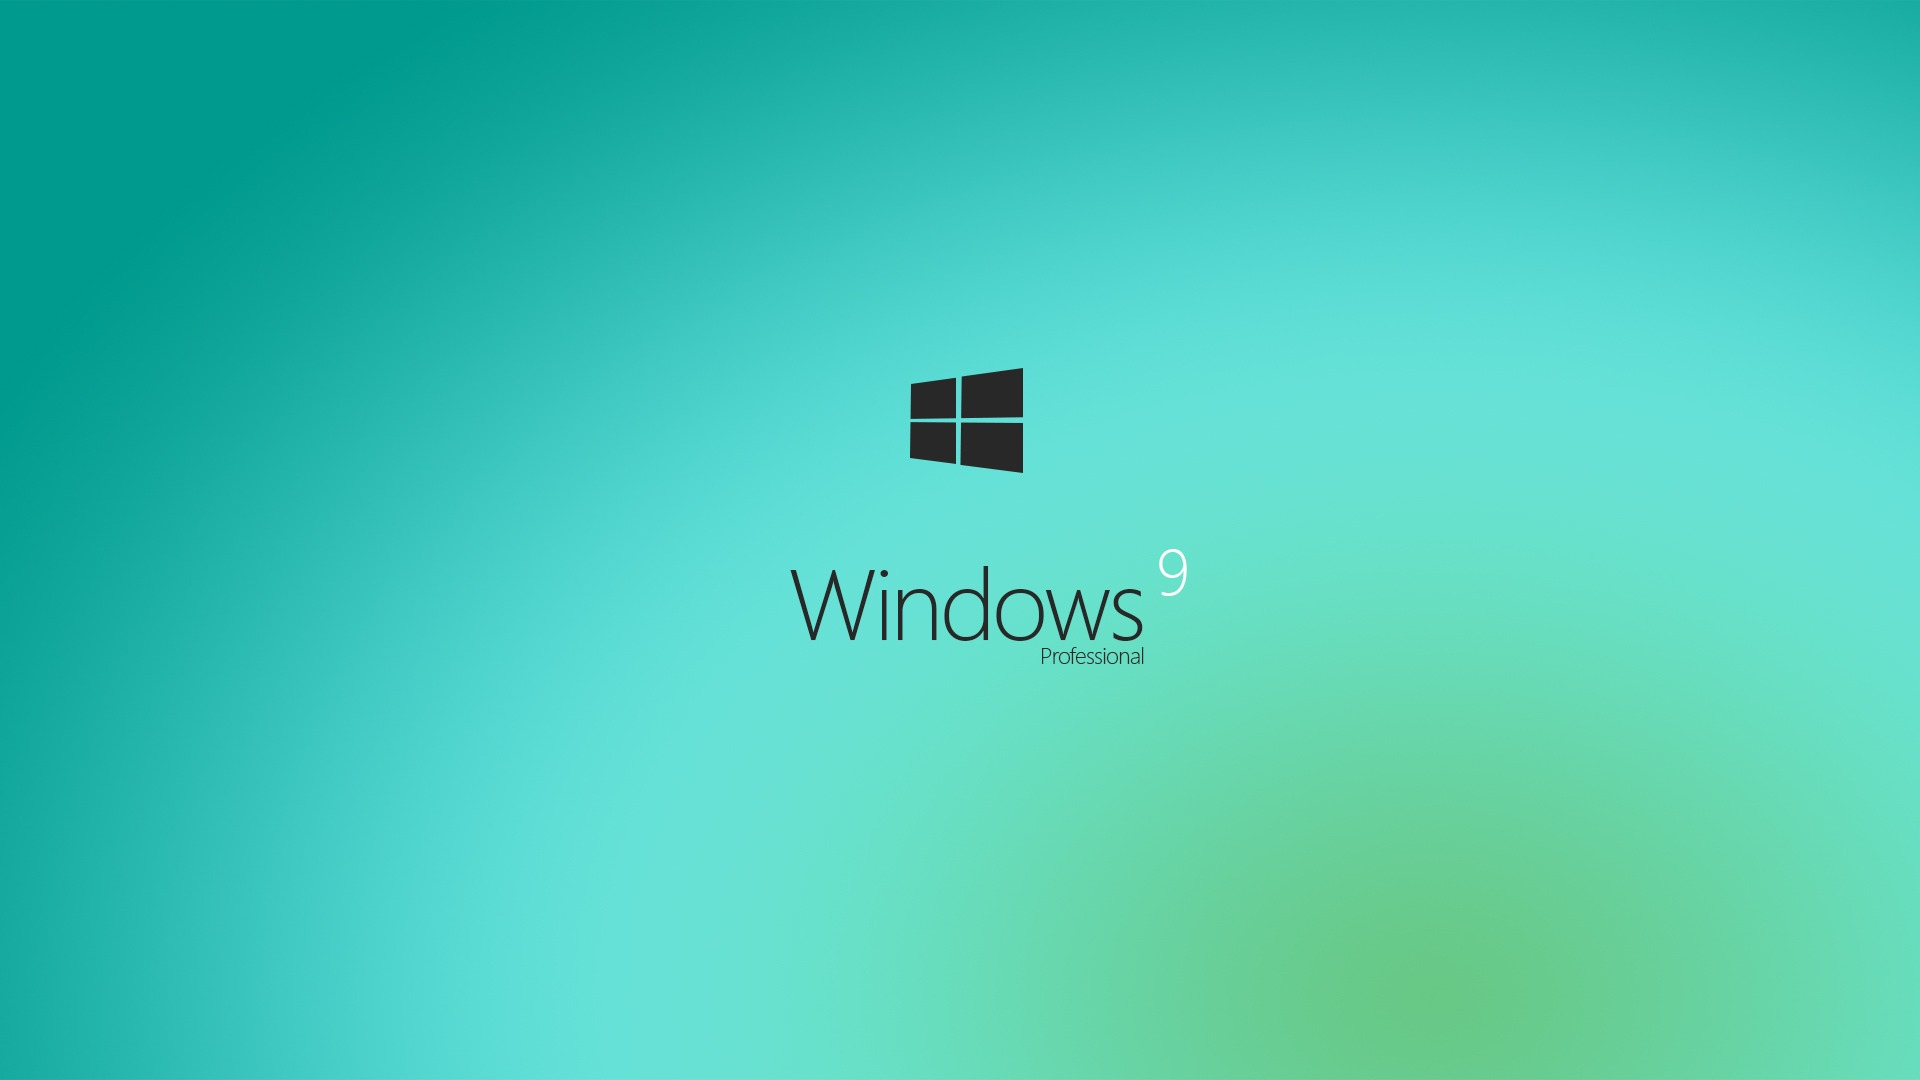 9 windows 9 hd wallpapers background images wallpaper